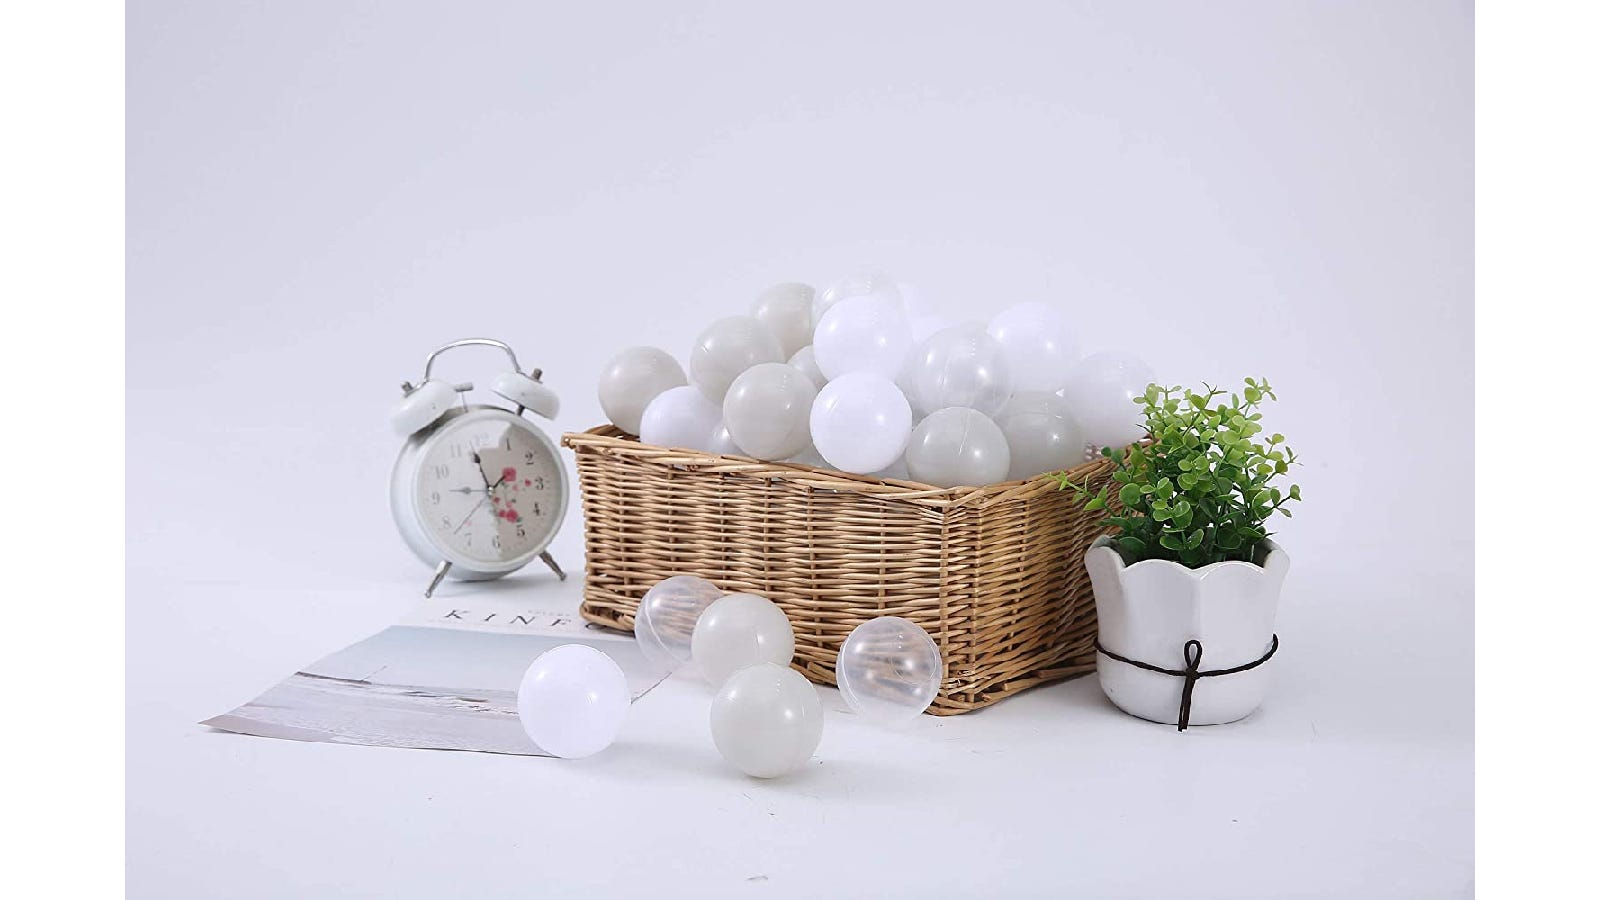 woven basket filled with white, gray, and clear plastic balls with a potted plant to the right and a white alarm clock to the left